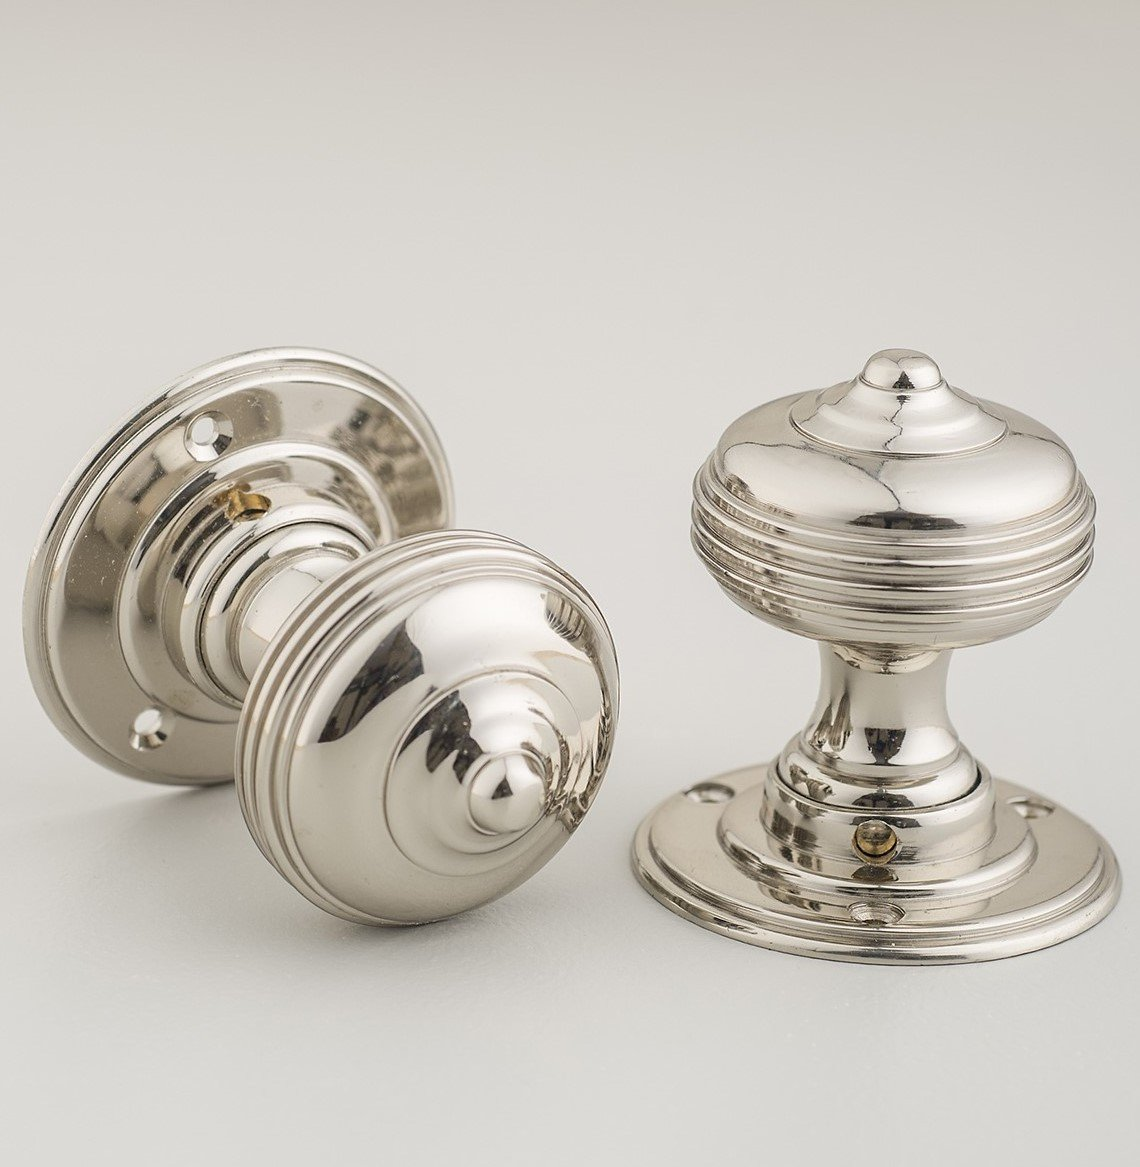 Queen Anne Regency Door Knobs (Pair) - Nickel save 25%